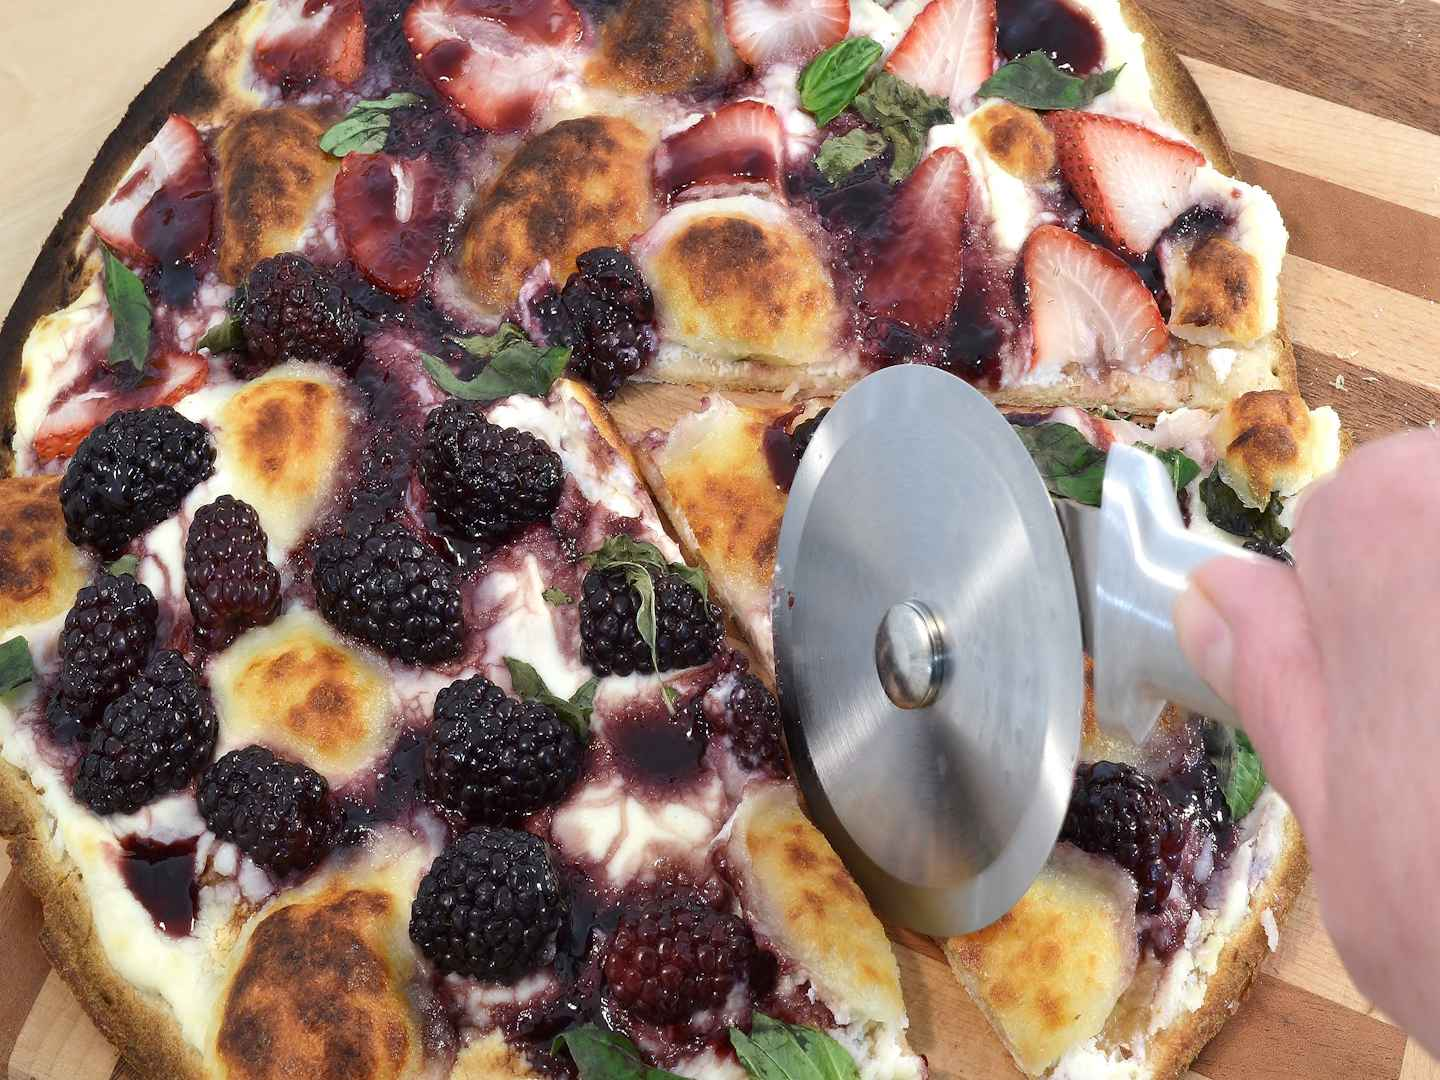 A delicious Blueberry Ricotta Pizza being cut but a Rada Pizza Cutter.